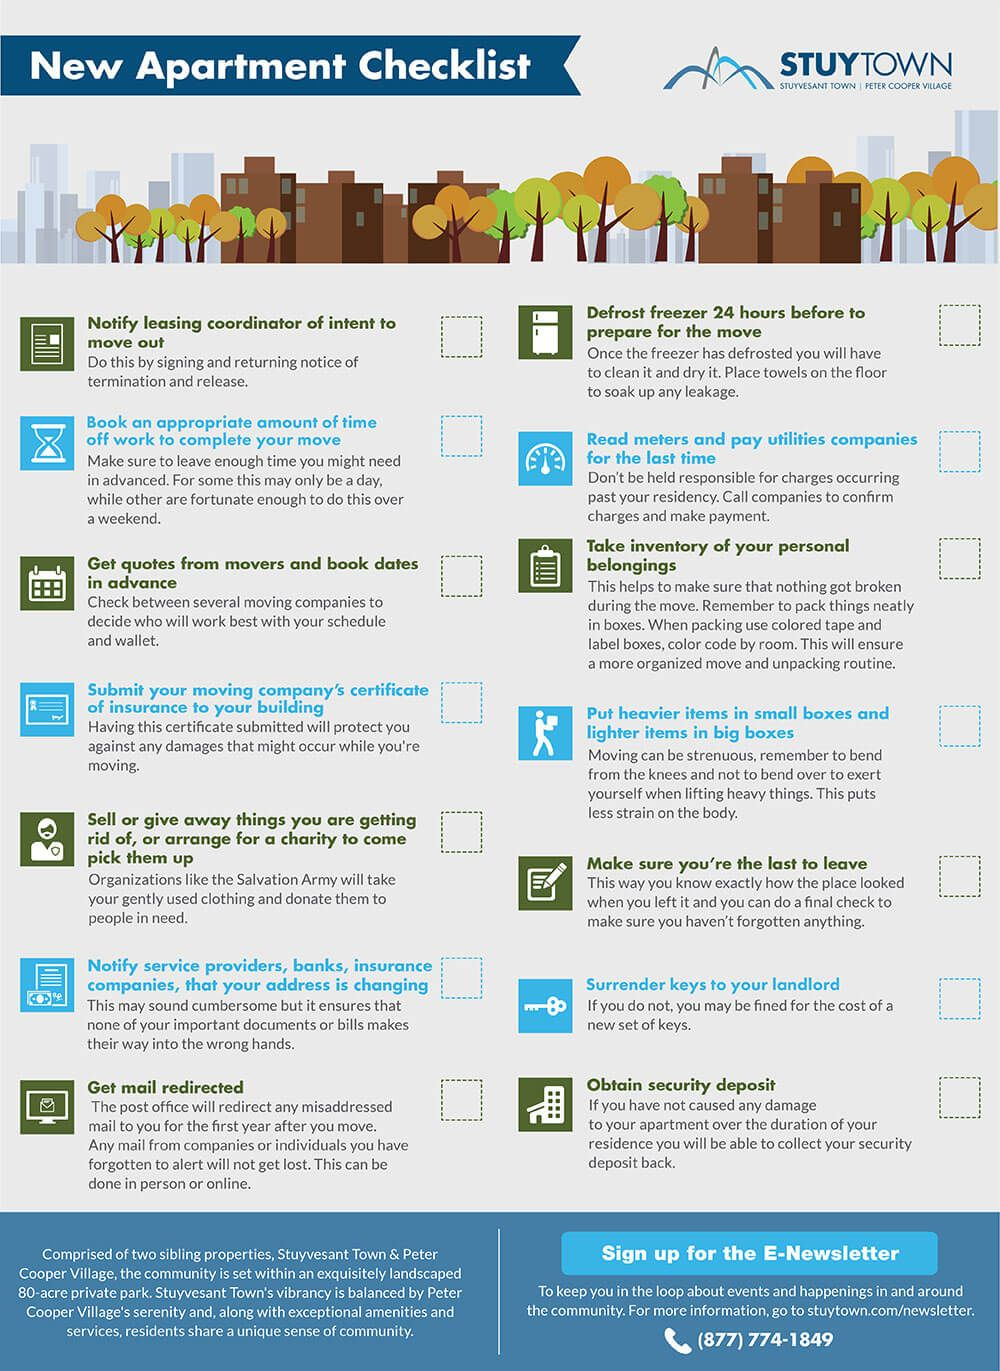 New Apartment Moving Checklist Infographic Wwa Pinterest